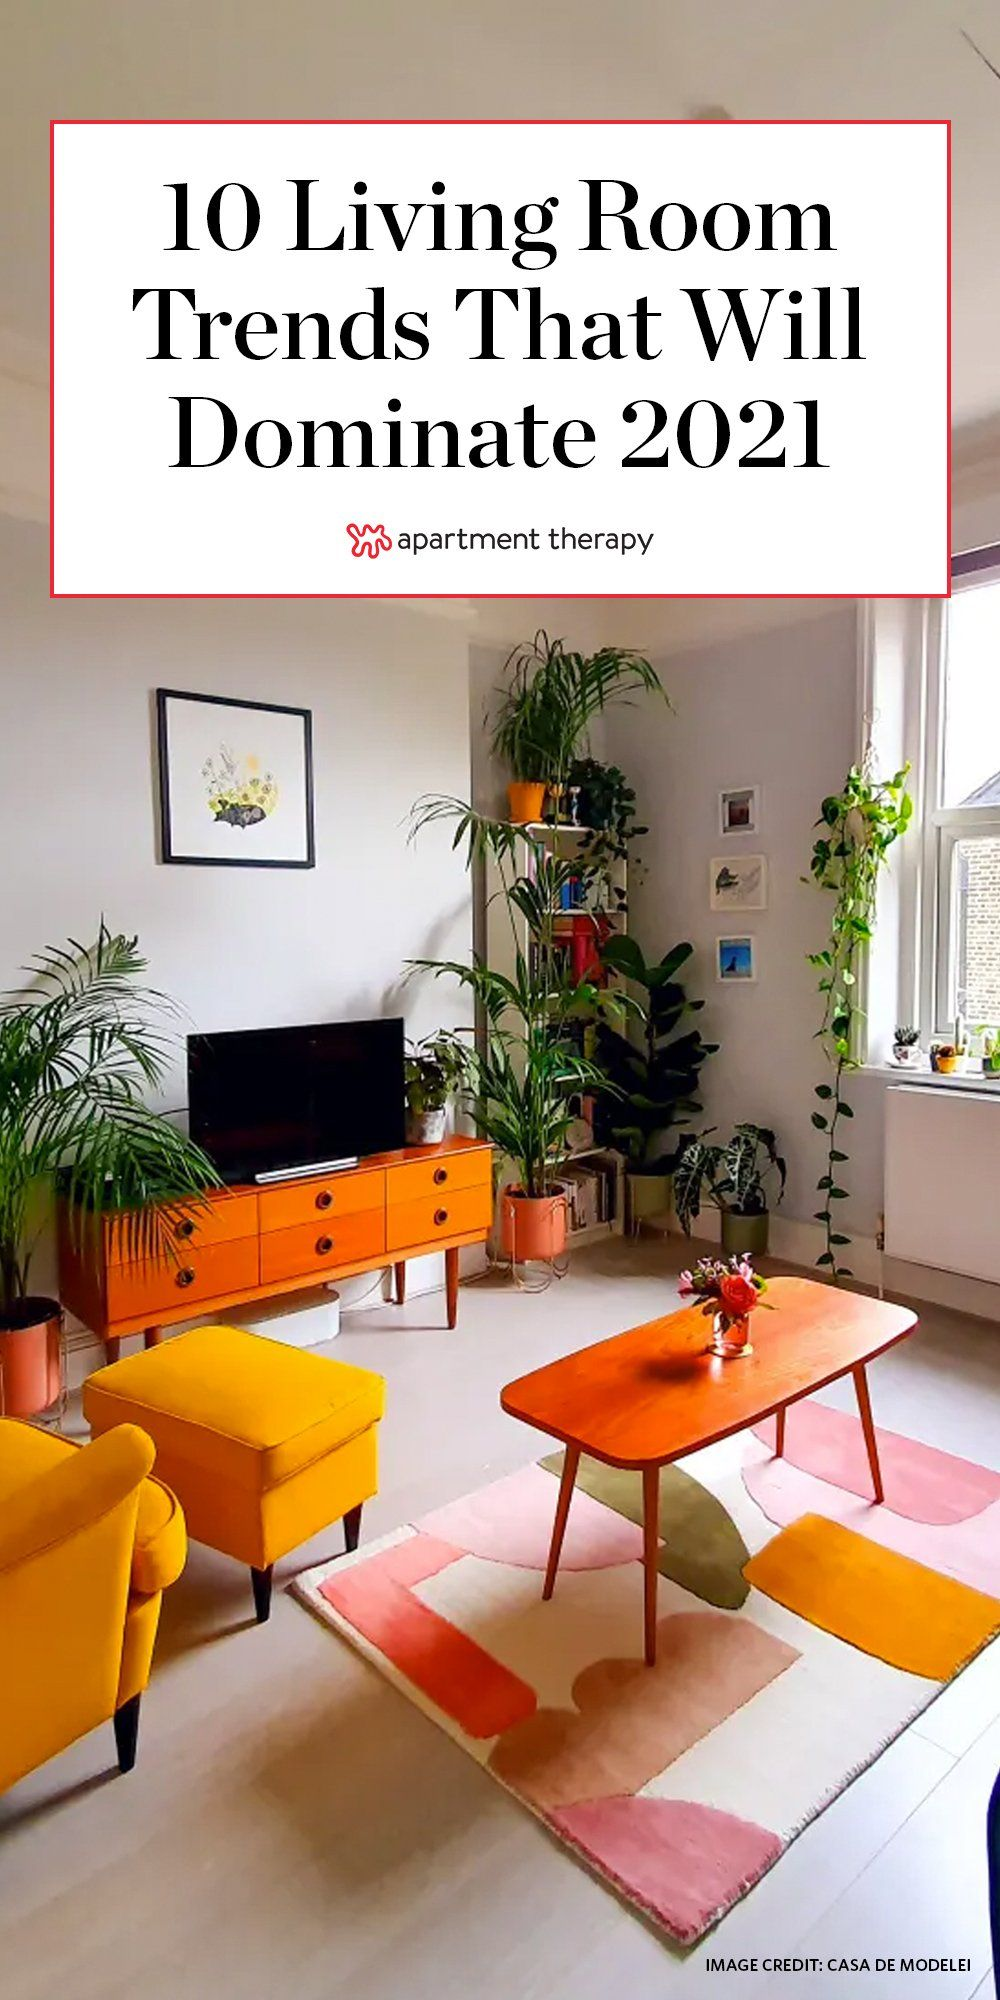 10 Living Room Trends That Will Dominate 2021 According To Designers Home Room Design Living Room Decor Apartment Living Room Trends Living room decorations 2021